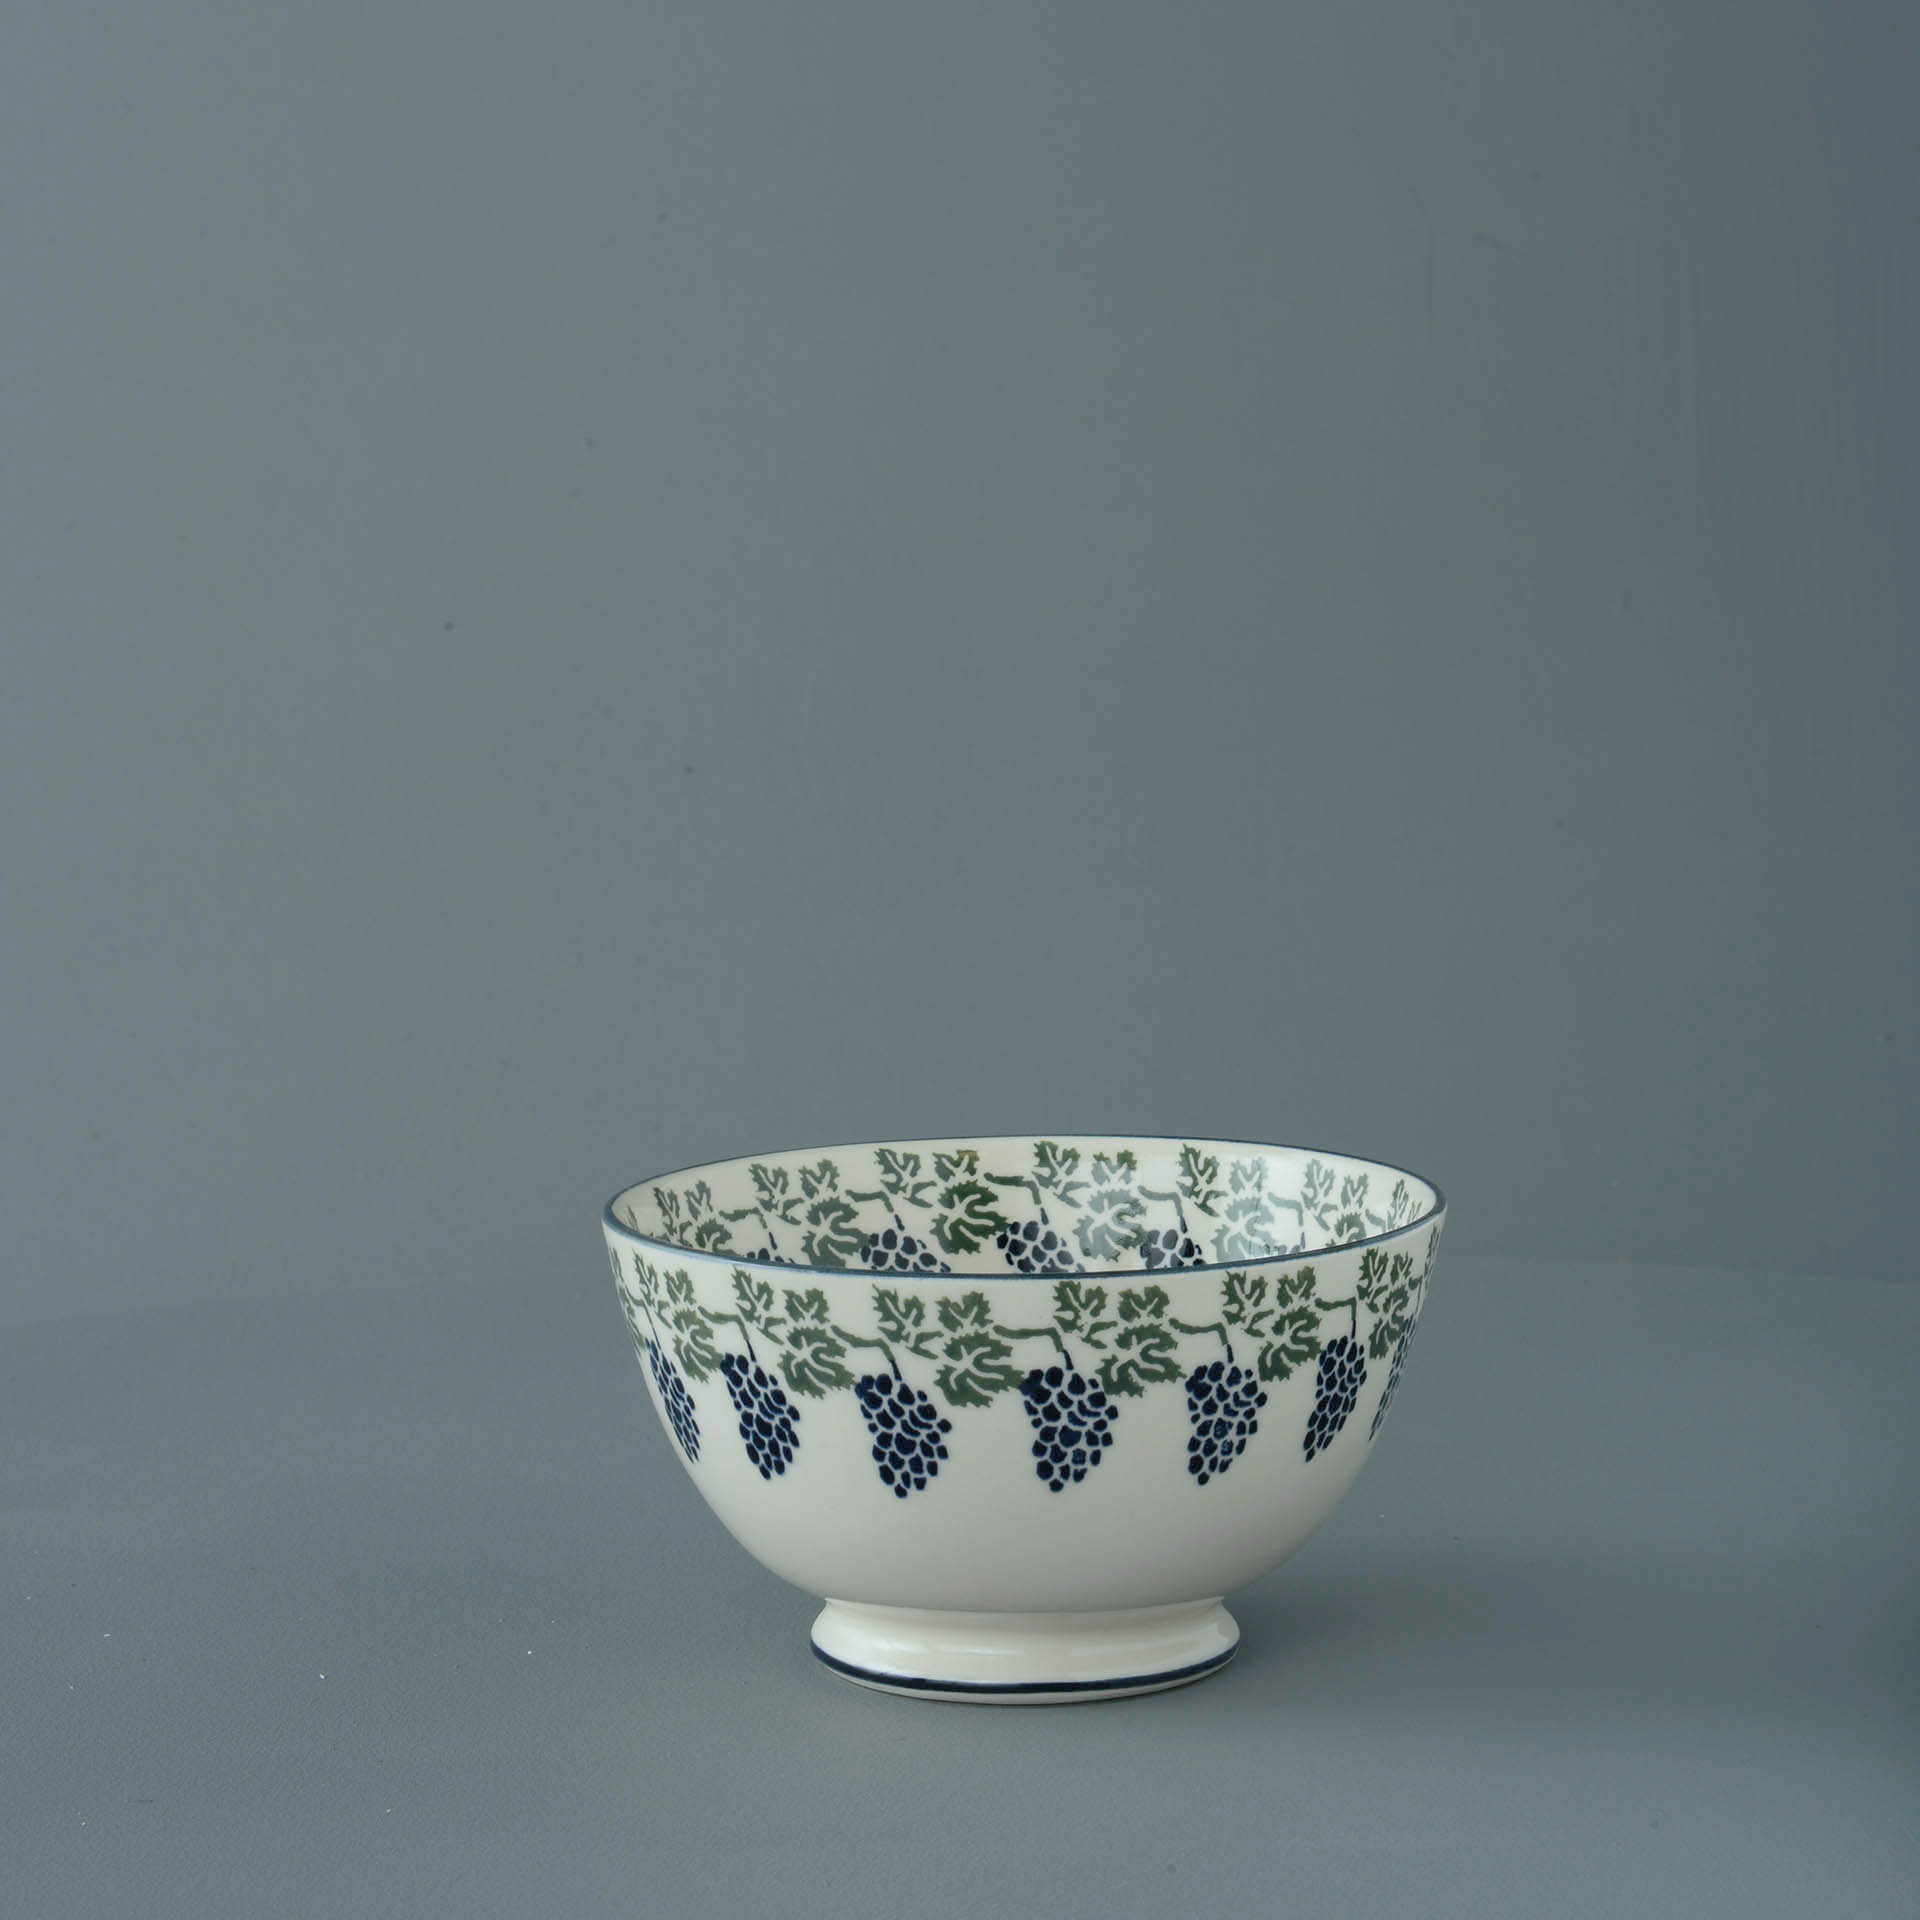 Grapes and Vine Cereal Bowl 7 x 13cm